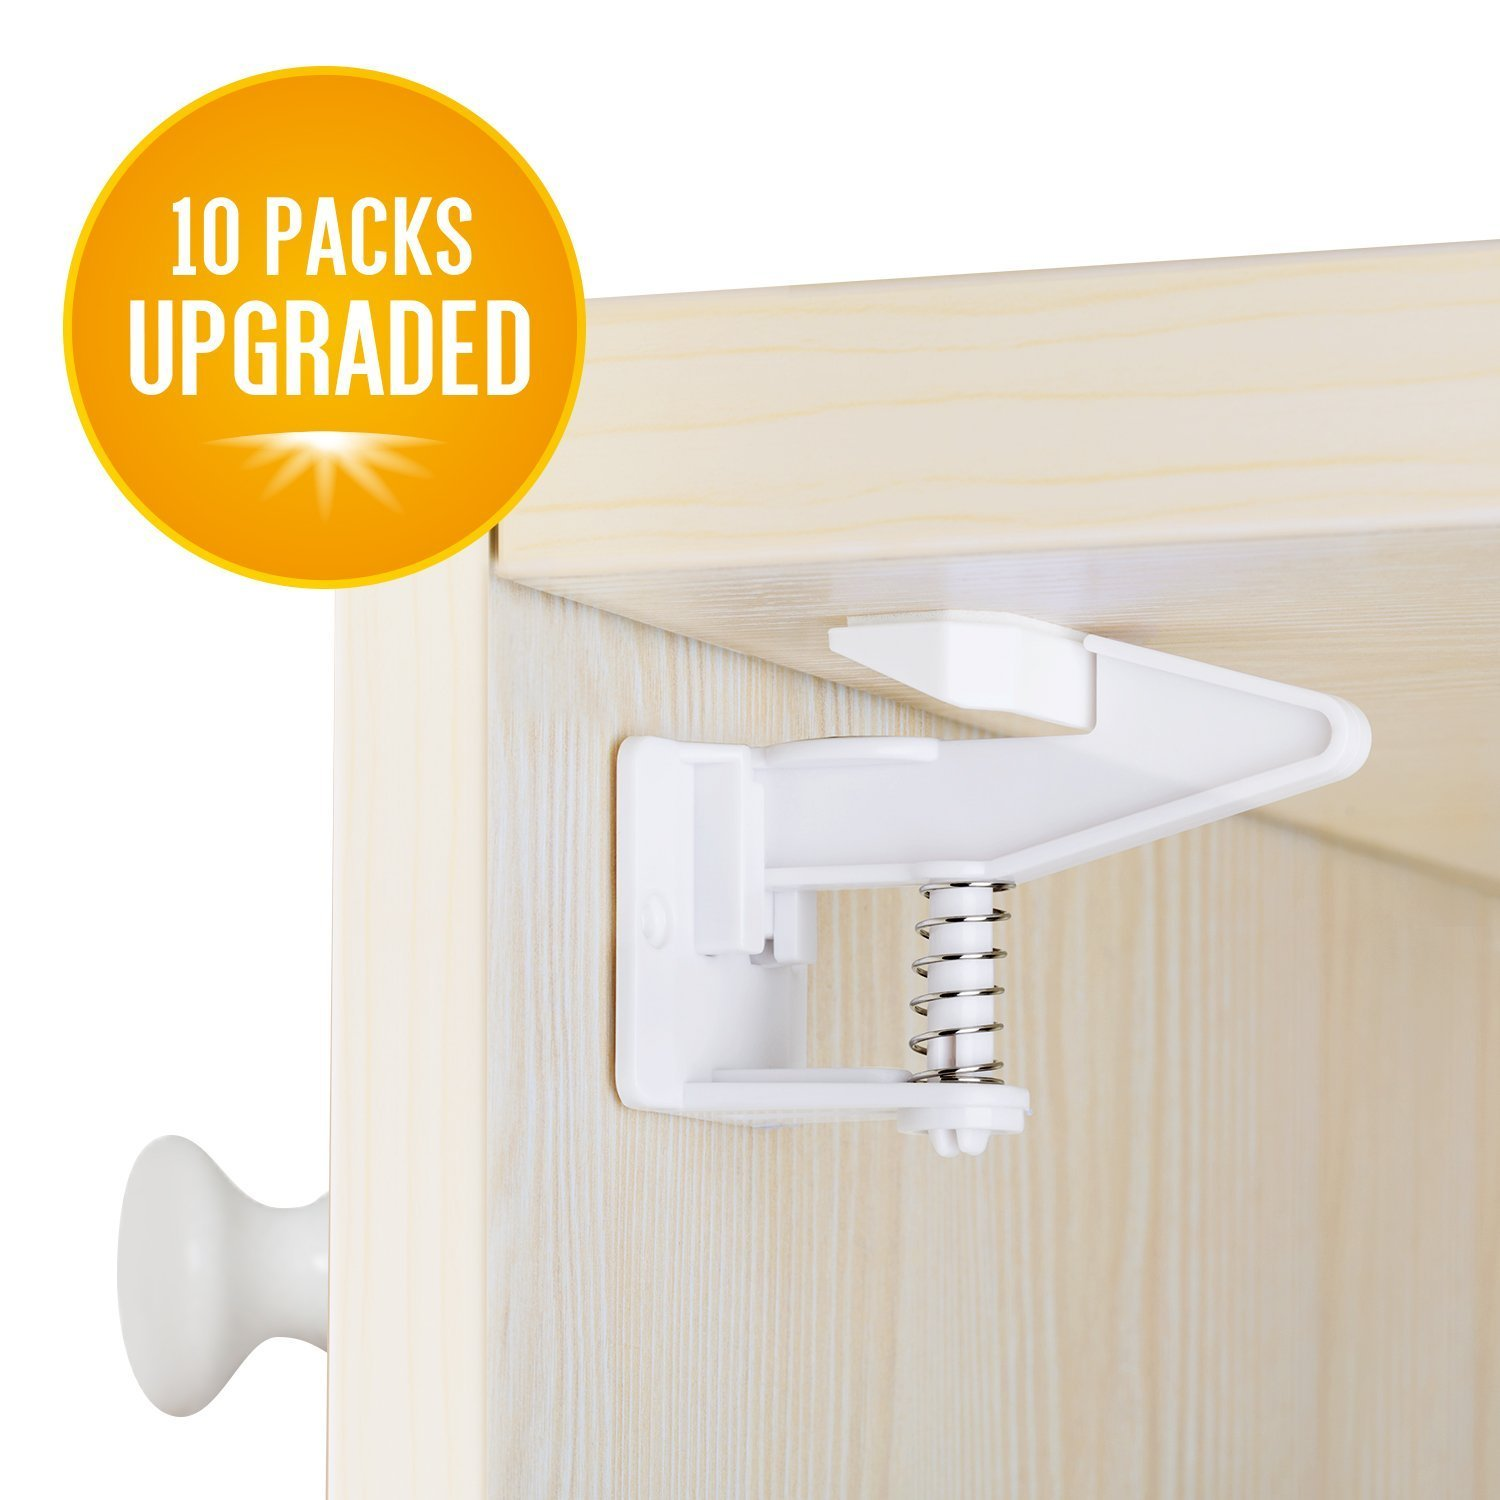 Child Safety Cabinet Latches 8 Pack Quick Easy Install No Tools Drilling or Measuring Universal Baby Proofing Locks